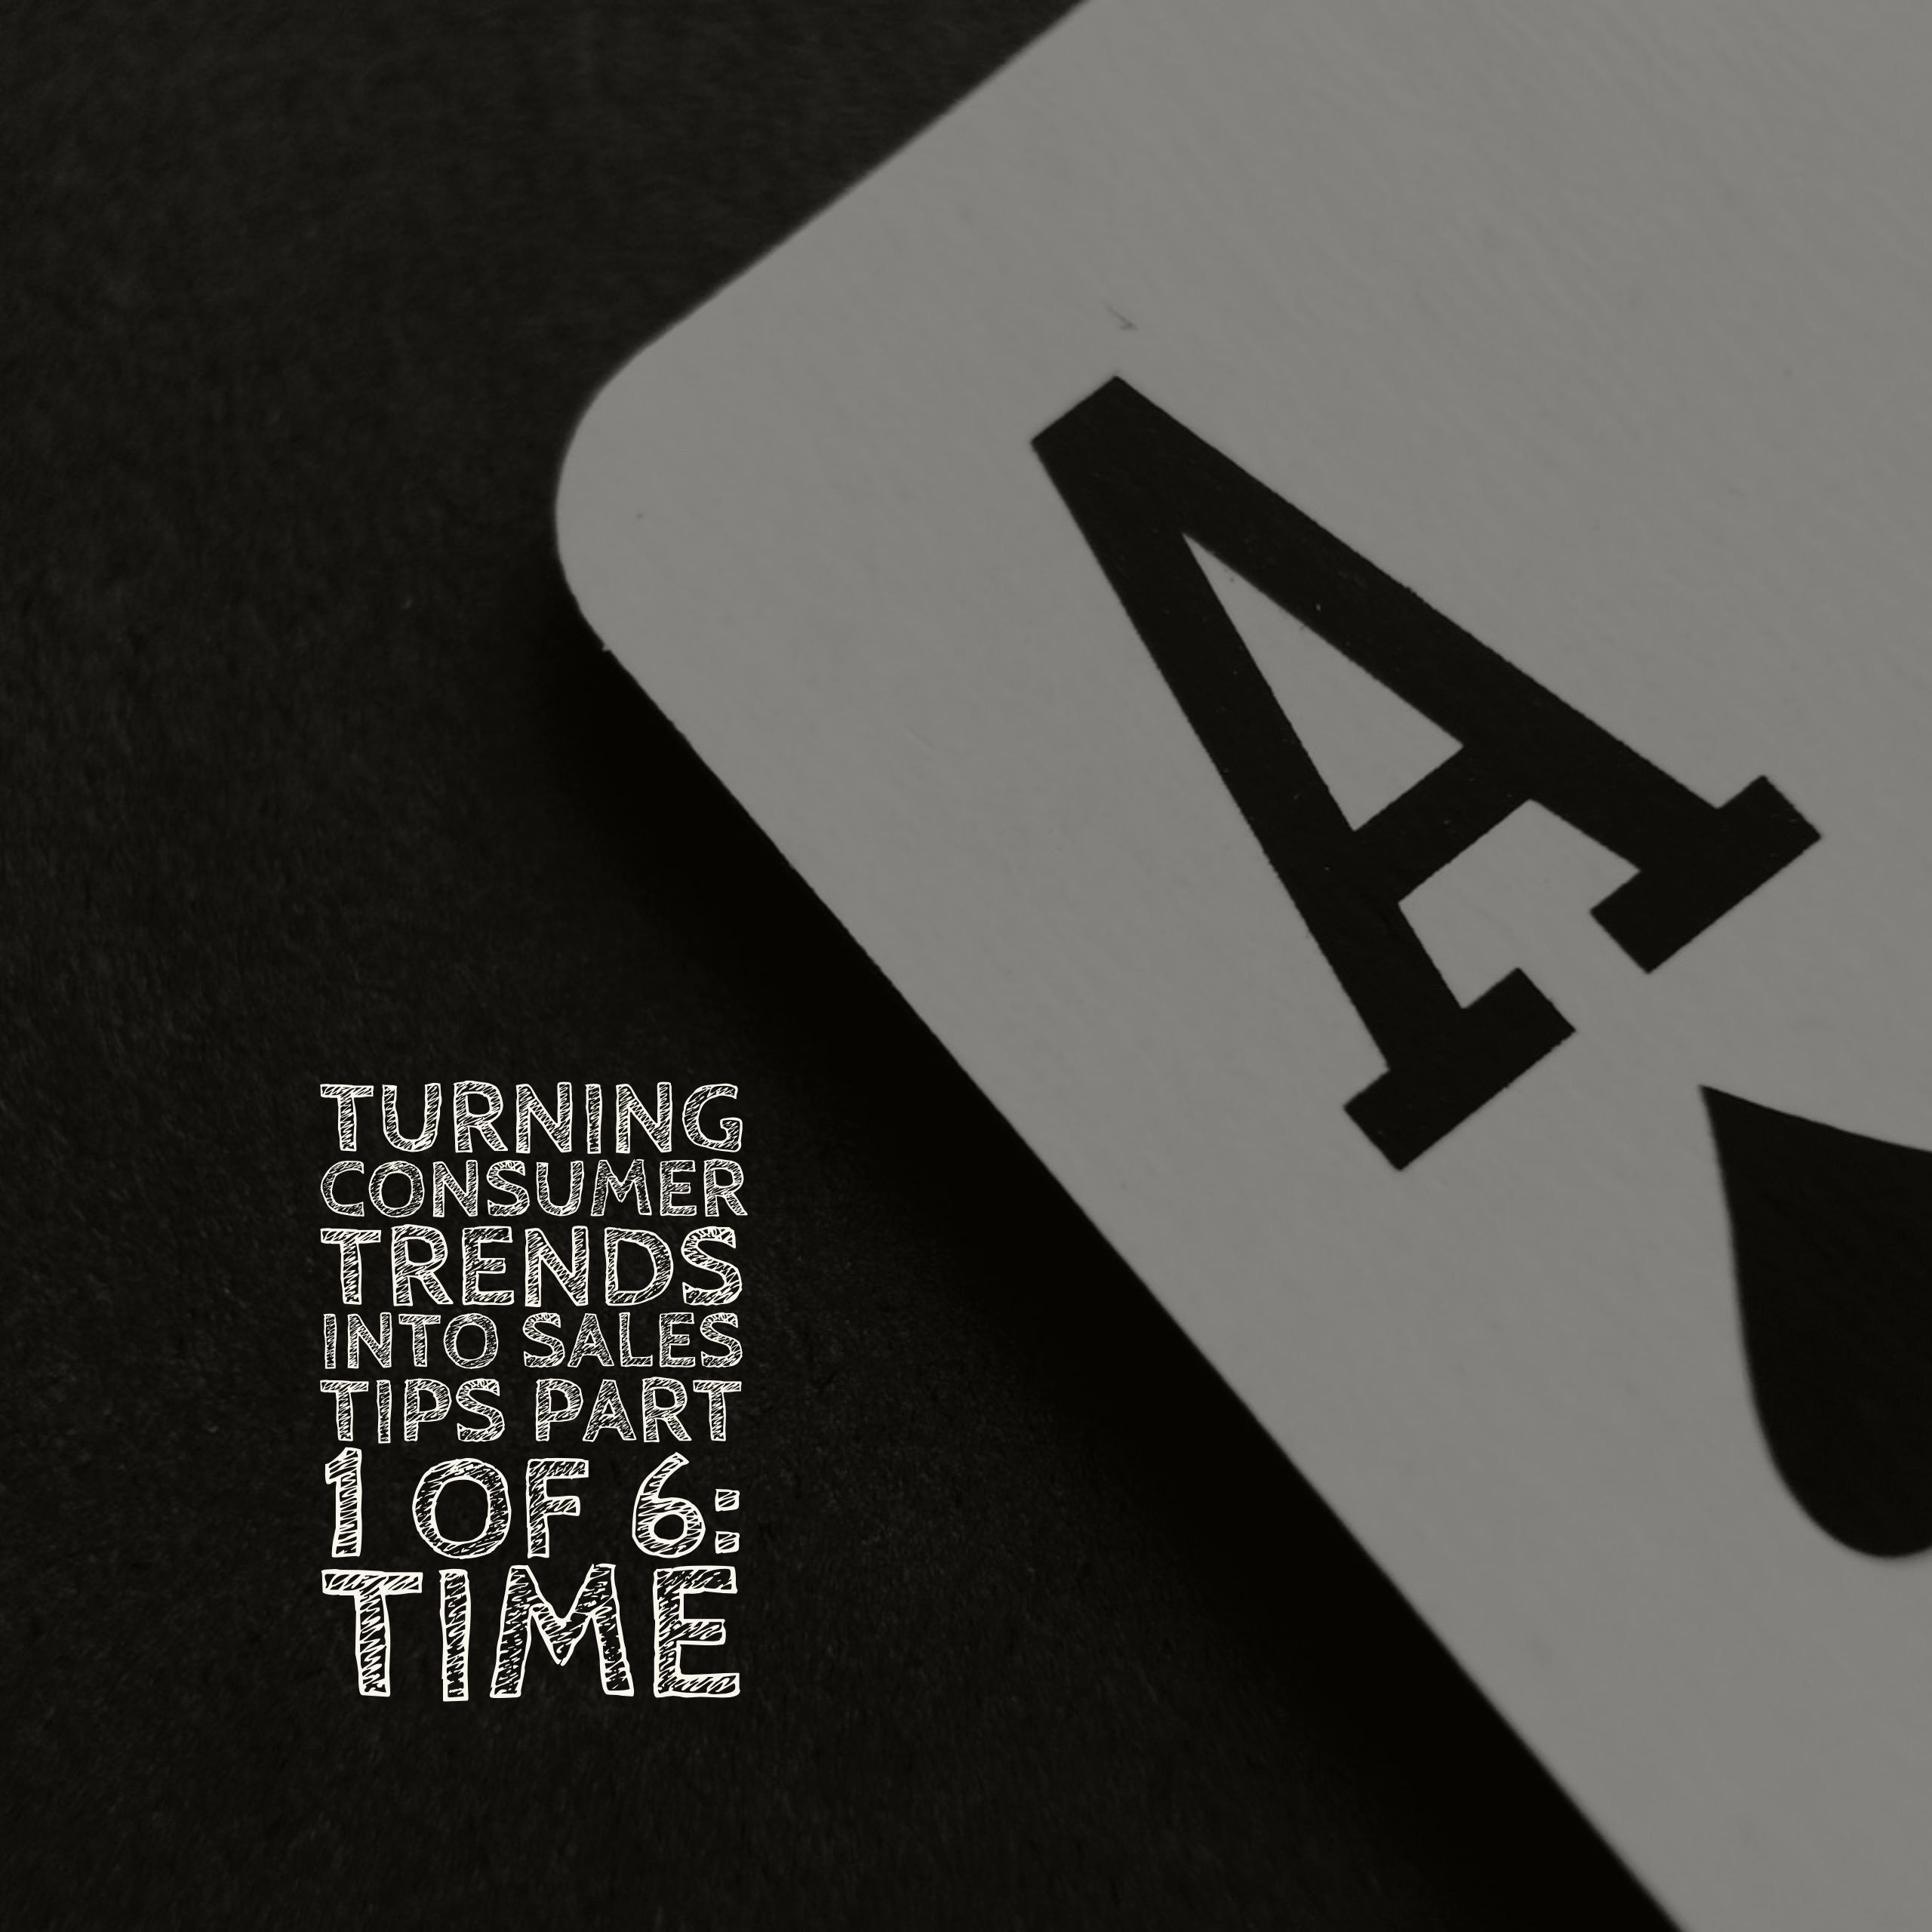 Turning Consumer Trends Into Sales Tips Part 1 of 6: Time